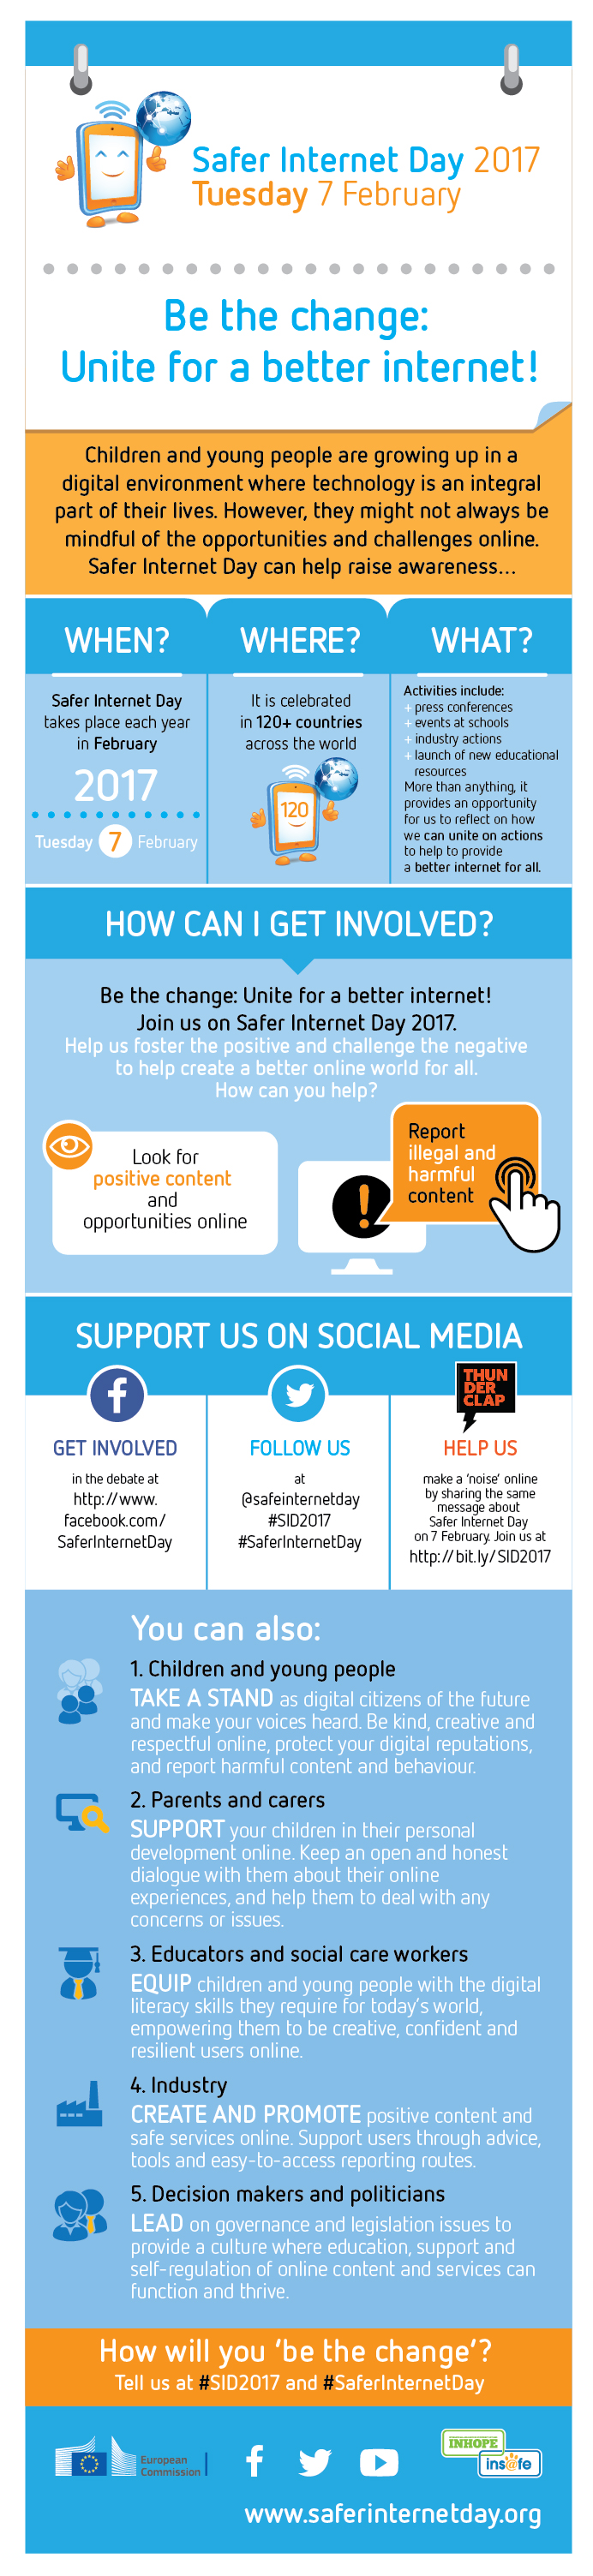 SID infographie_2017-01